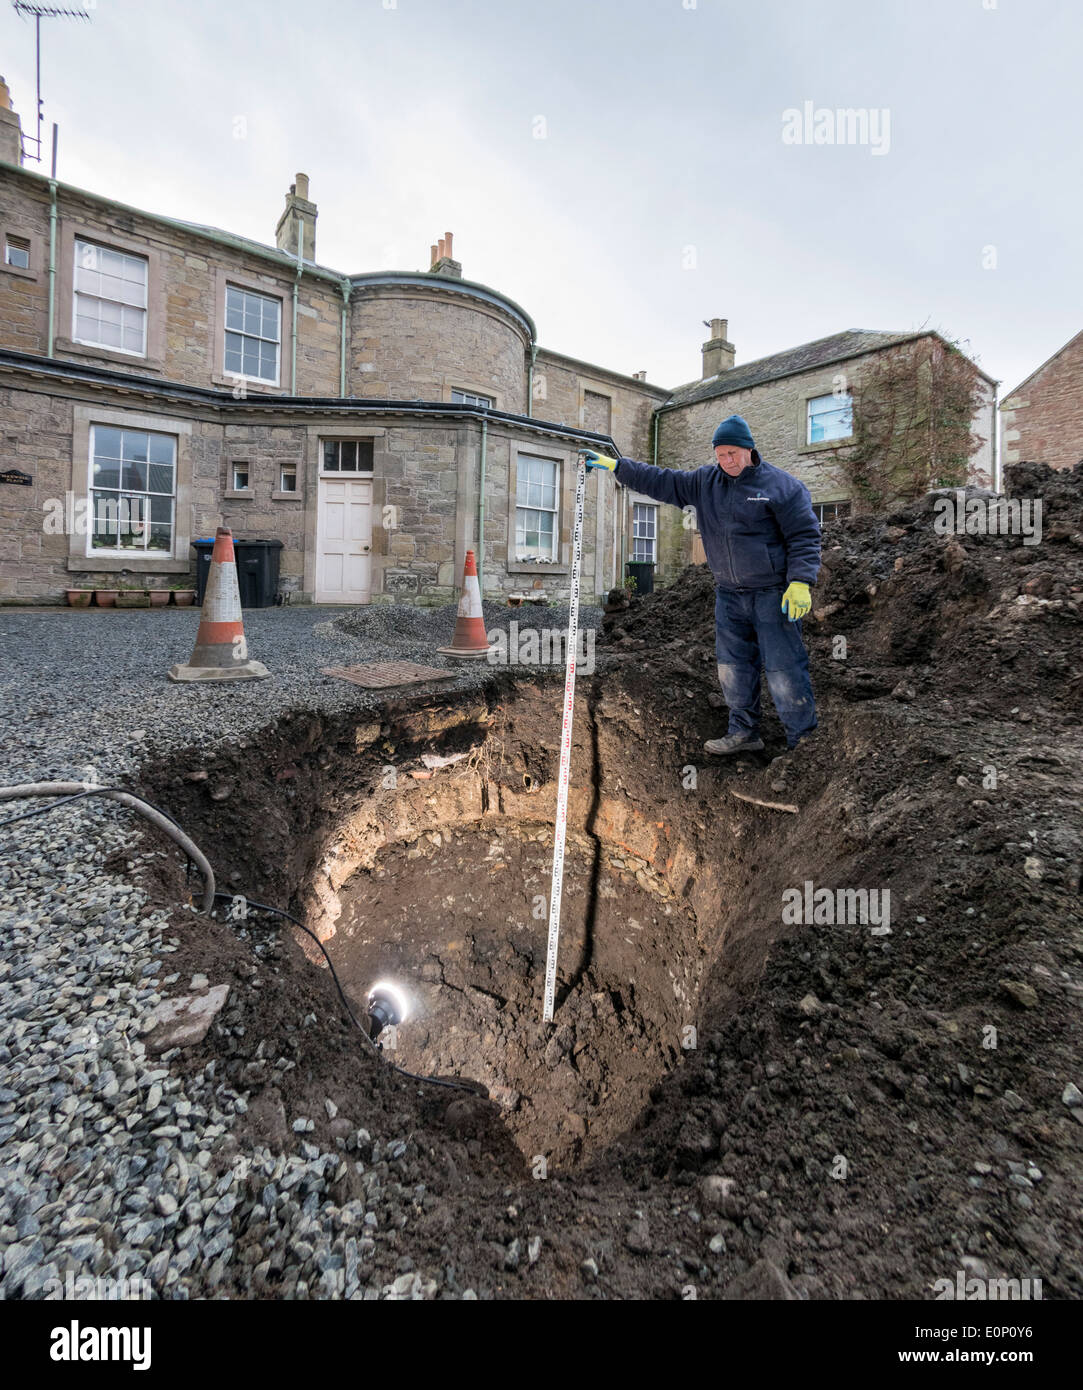 Builder inspects a hidden underground structure revealed by a void collapsing in a yard - Georgian brick icehouse, well or drain - Stock Image